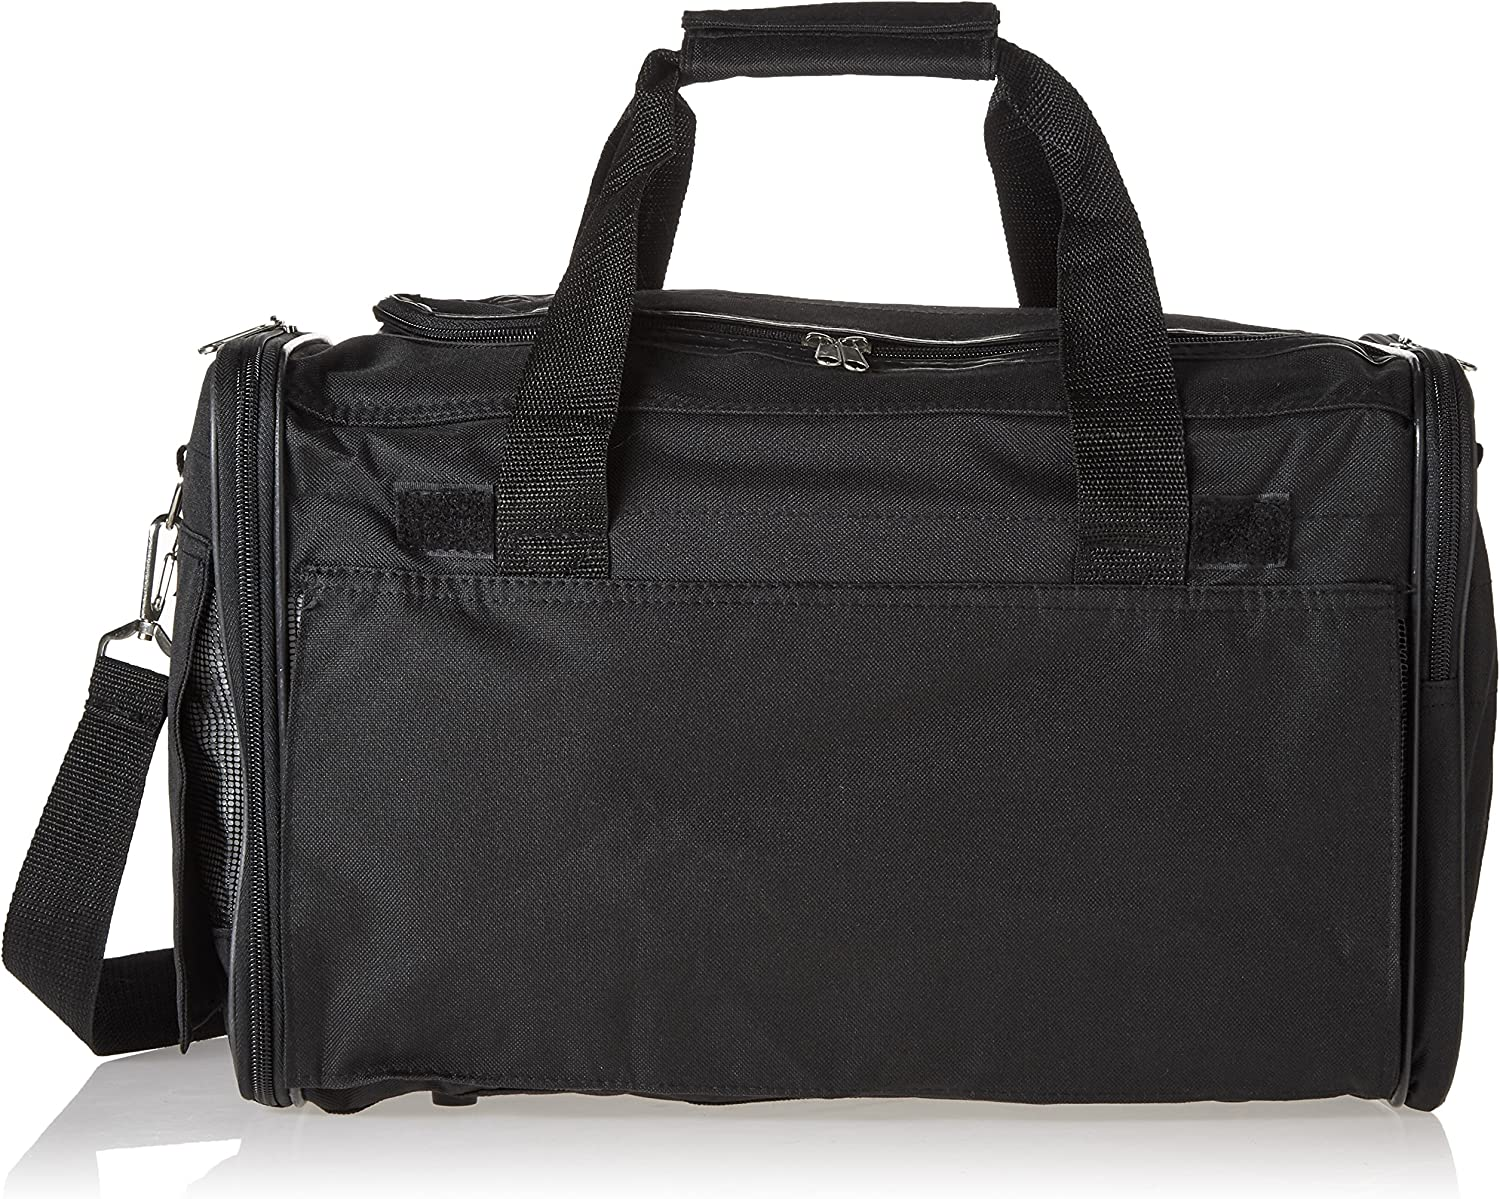 Costdot 5049 Airline Approved Dog Travel Carrier Pet Tote